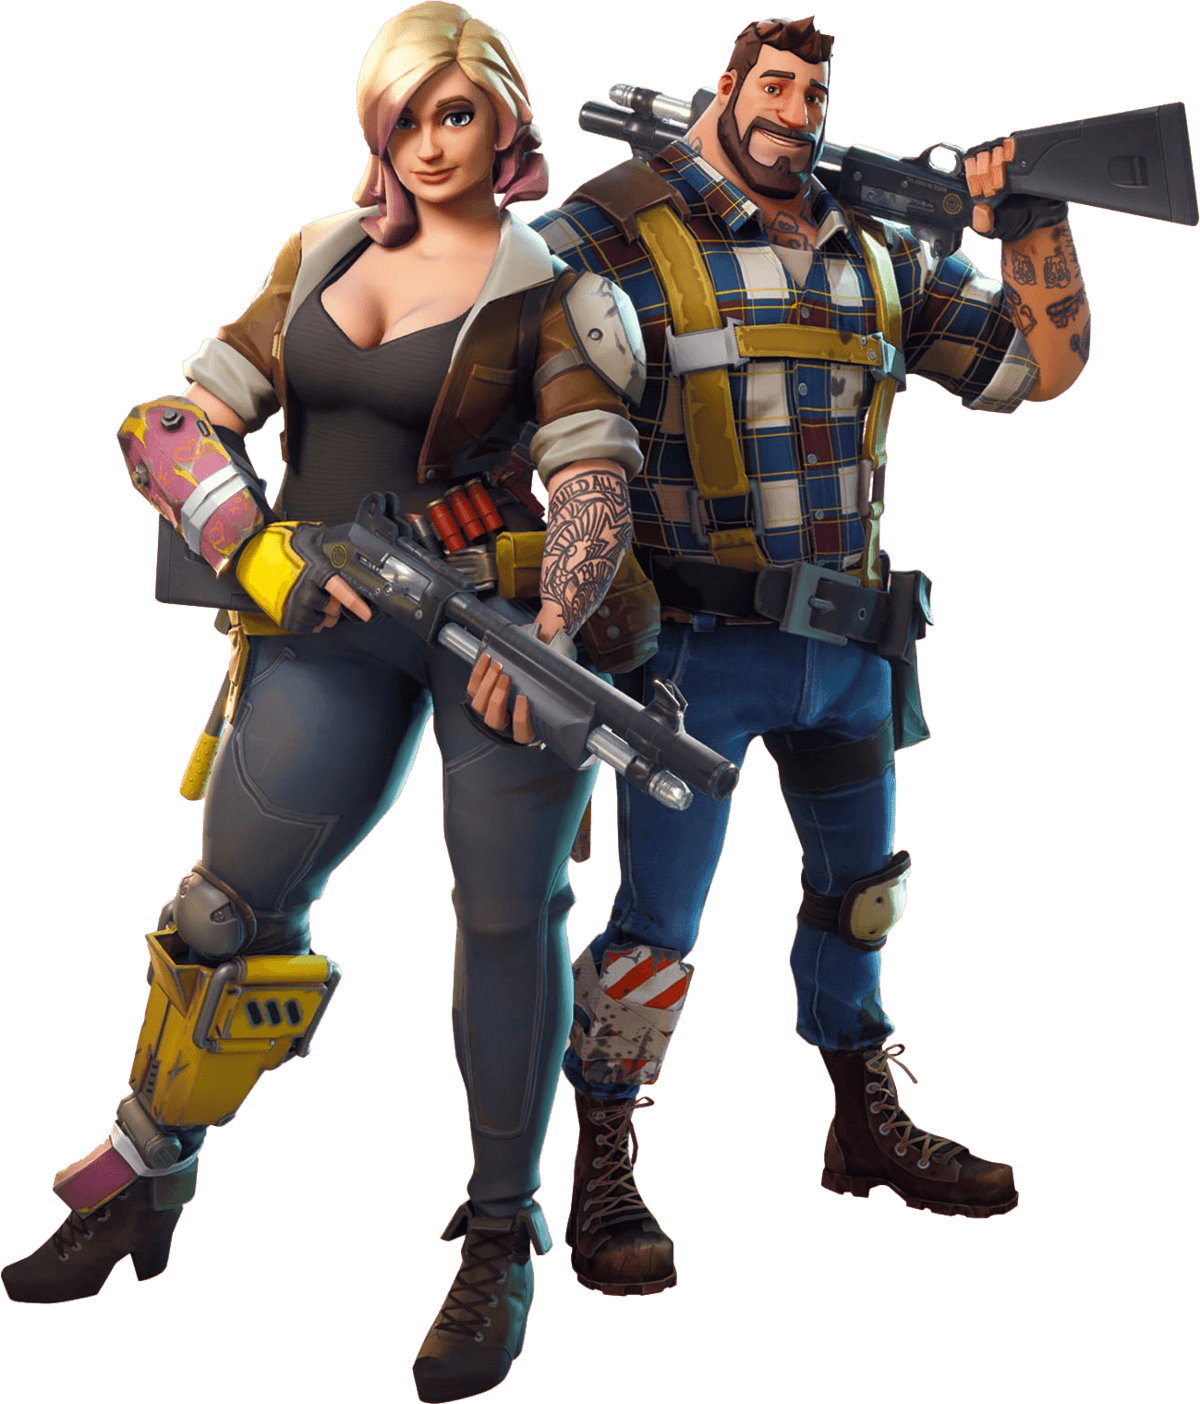 Constructor Fortnite wallpapers